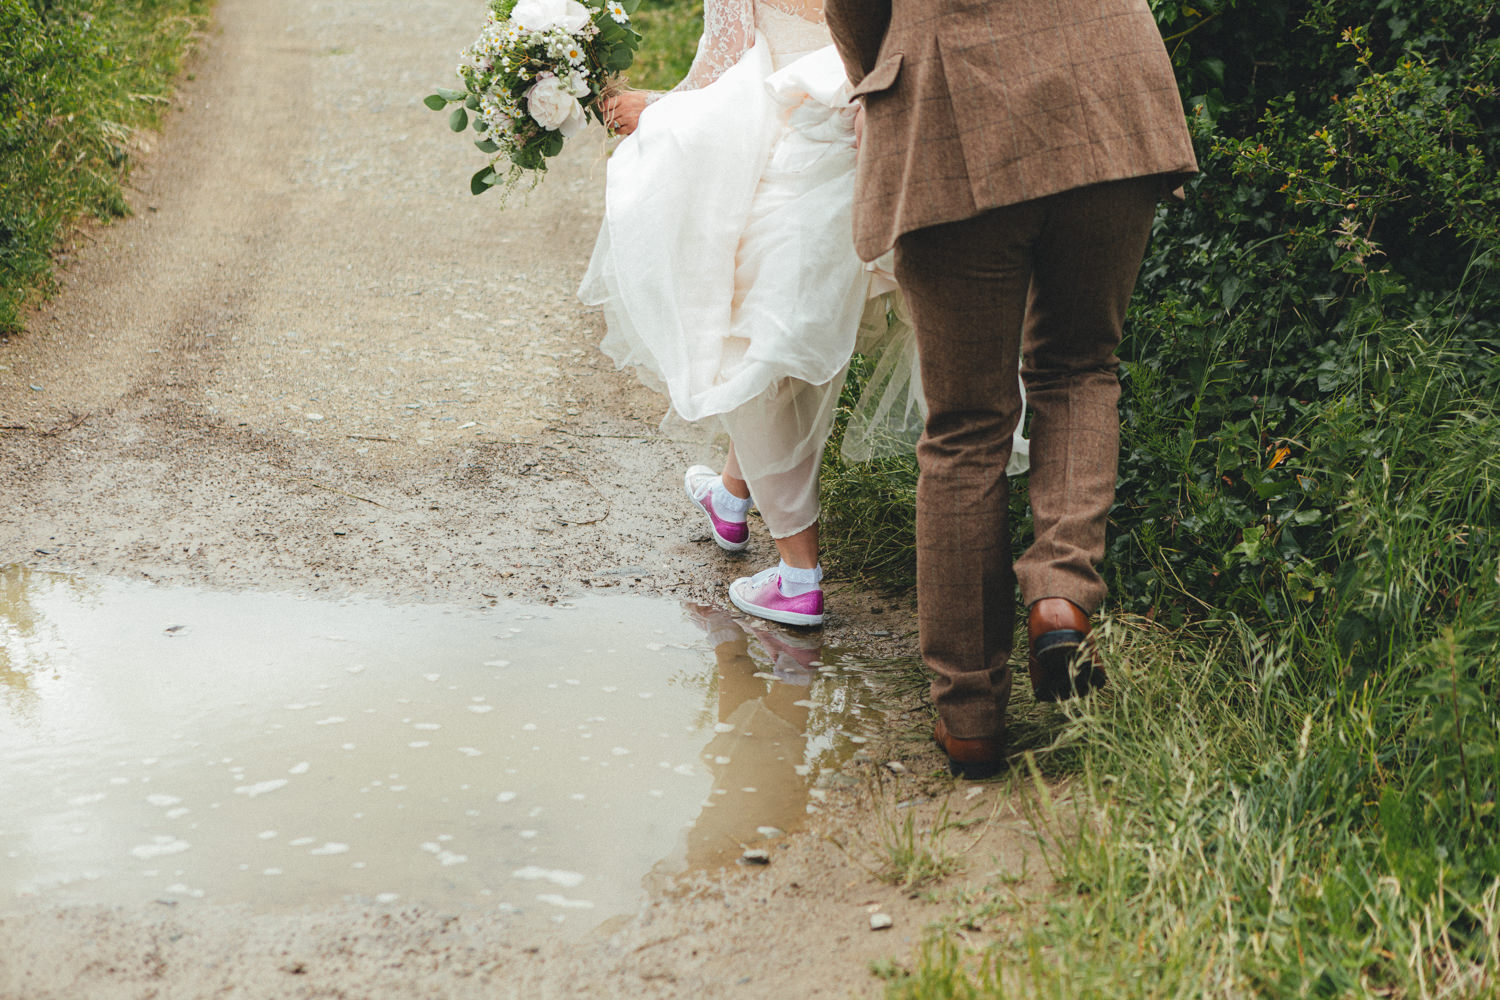 Puddle, wet weather, walking. Bride on her way to the church. Bride walking. Pathway. Archway. Cornish Tipi Wedding Photographer. Wedding Photography at Cornish Tipi Weddings on the coast of North Cornwall. Cornish Tipi Wedding is set in a wooded valley, surrounded by ancient woodlands